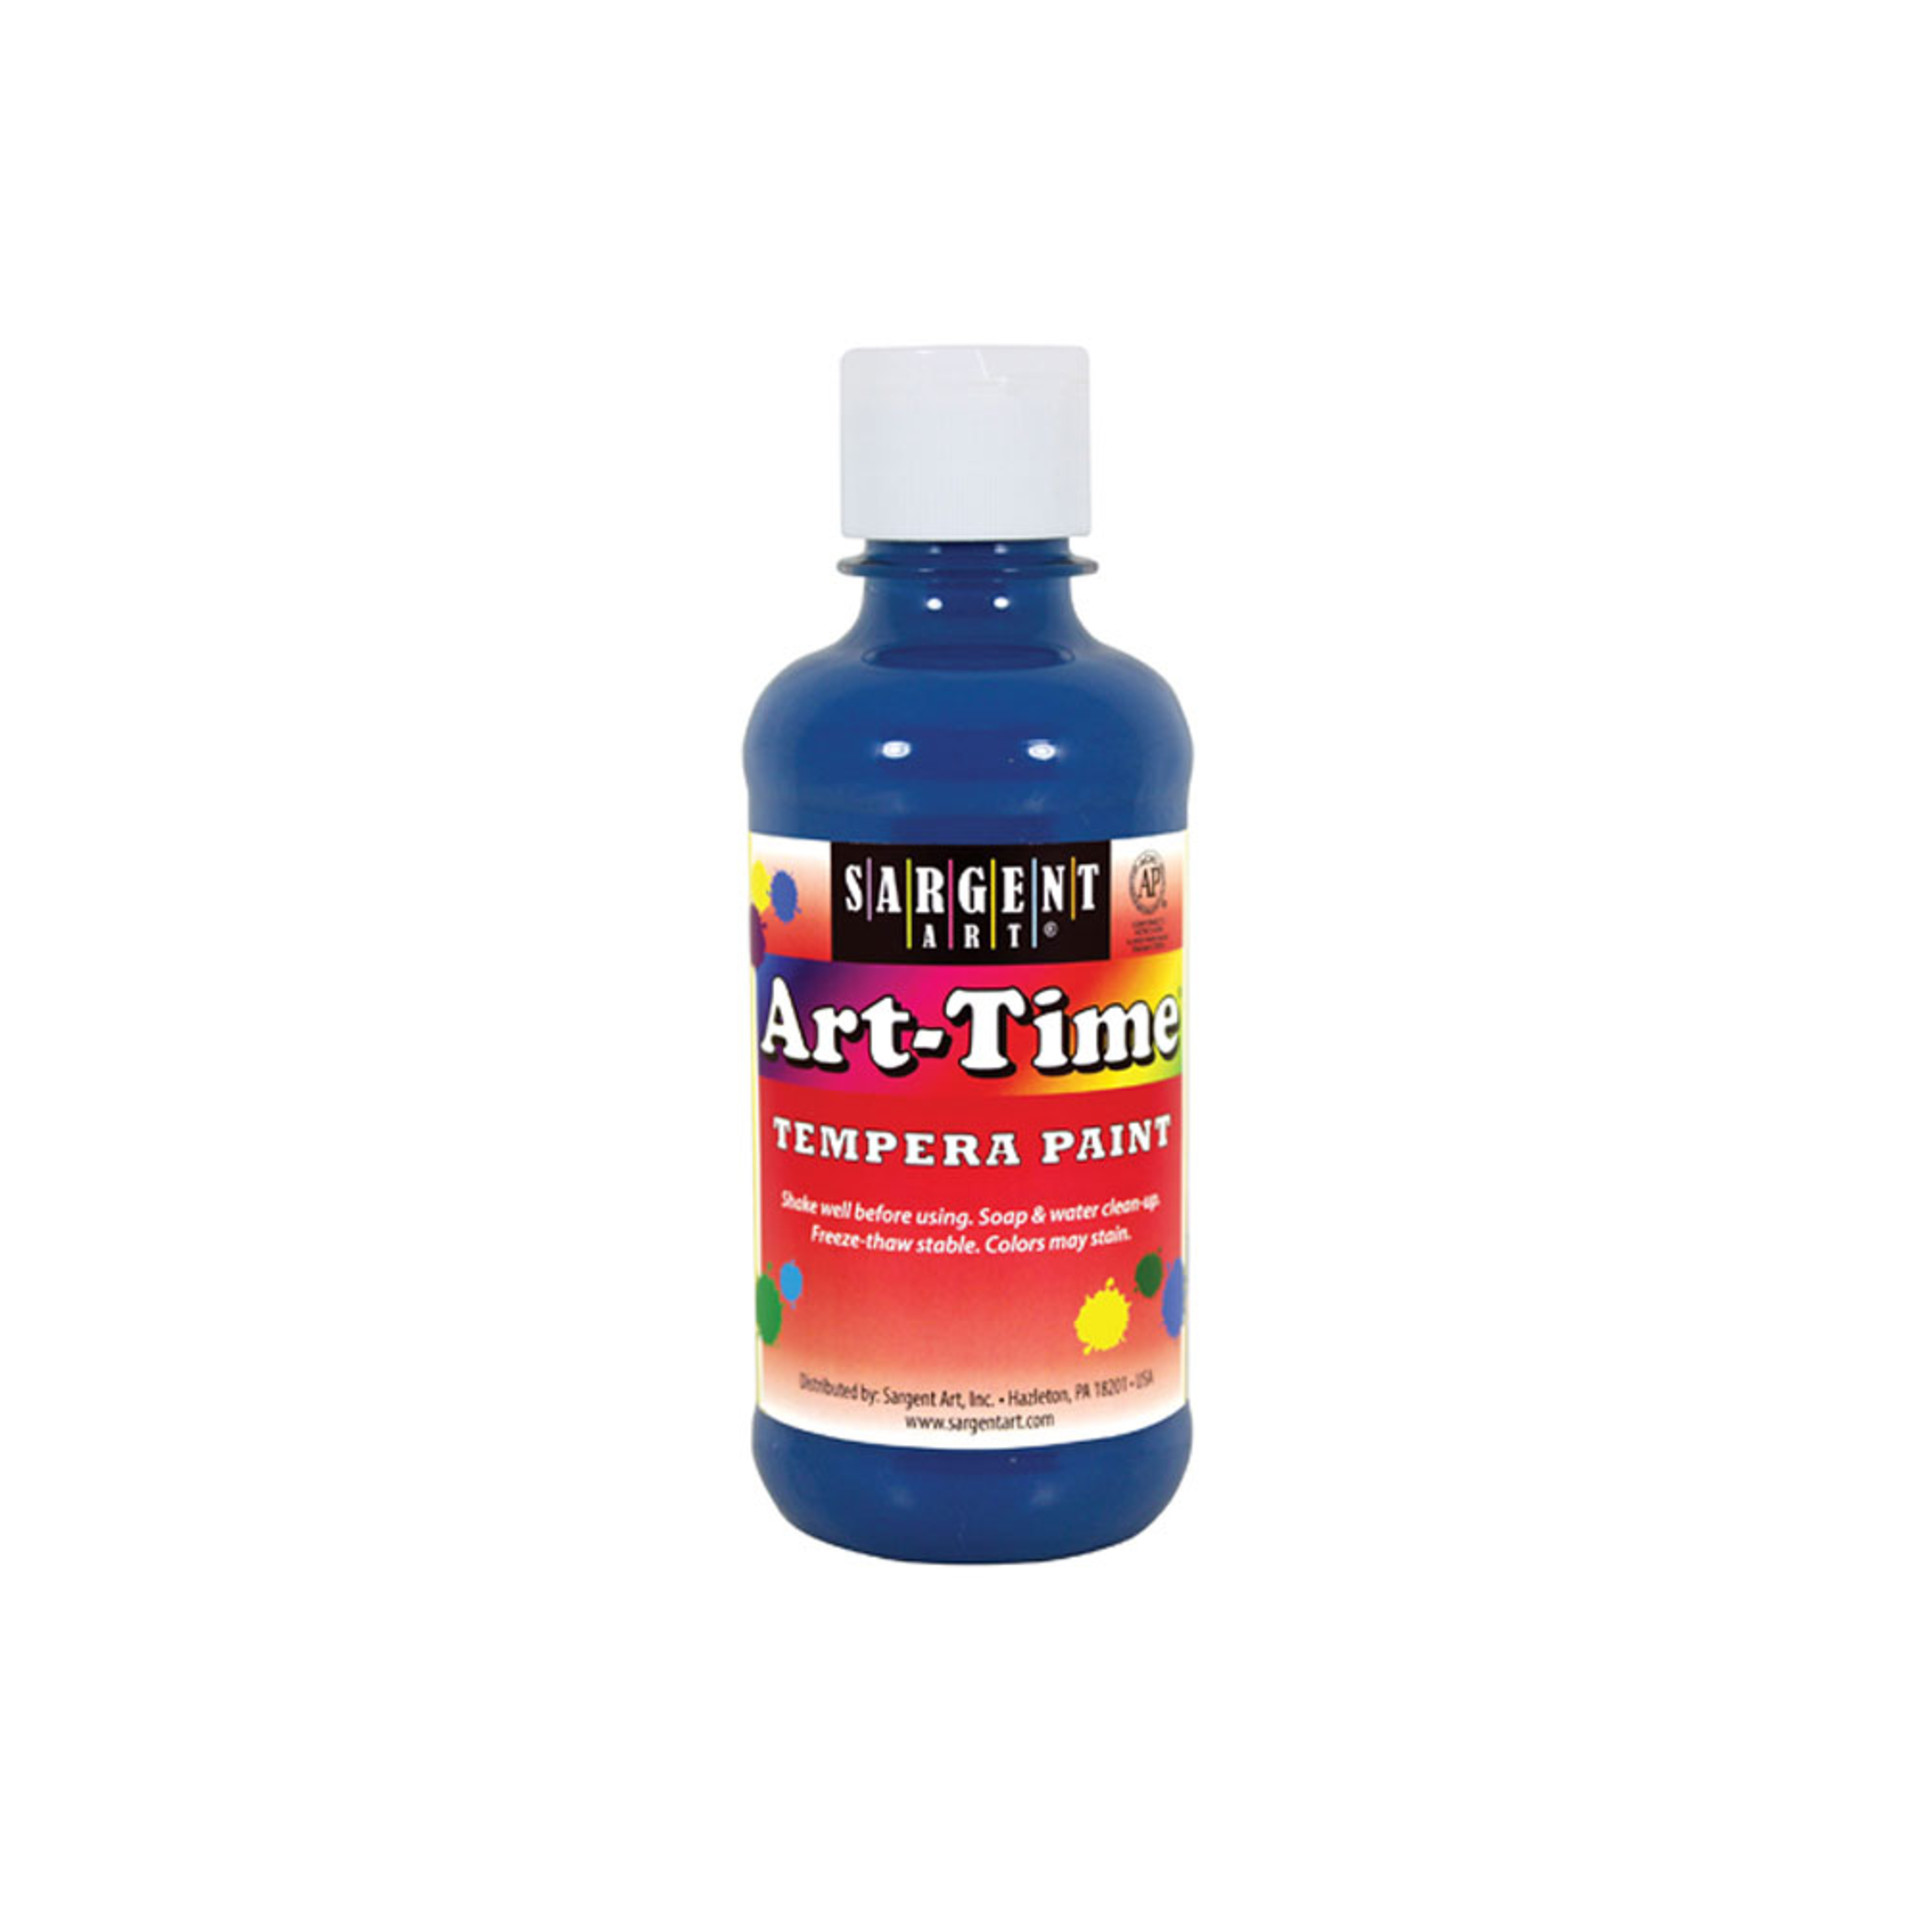 Sargent Art Time 8oz. Tempera Paint – Turquoise